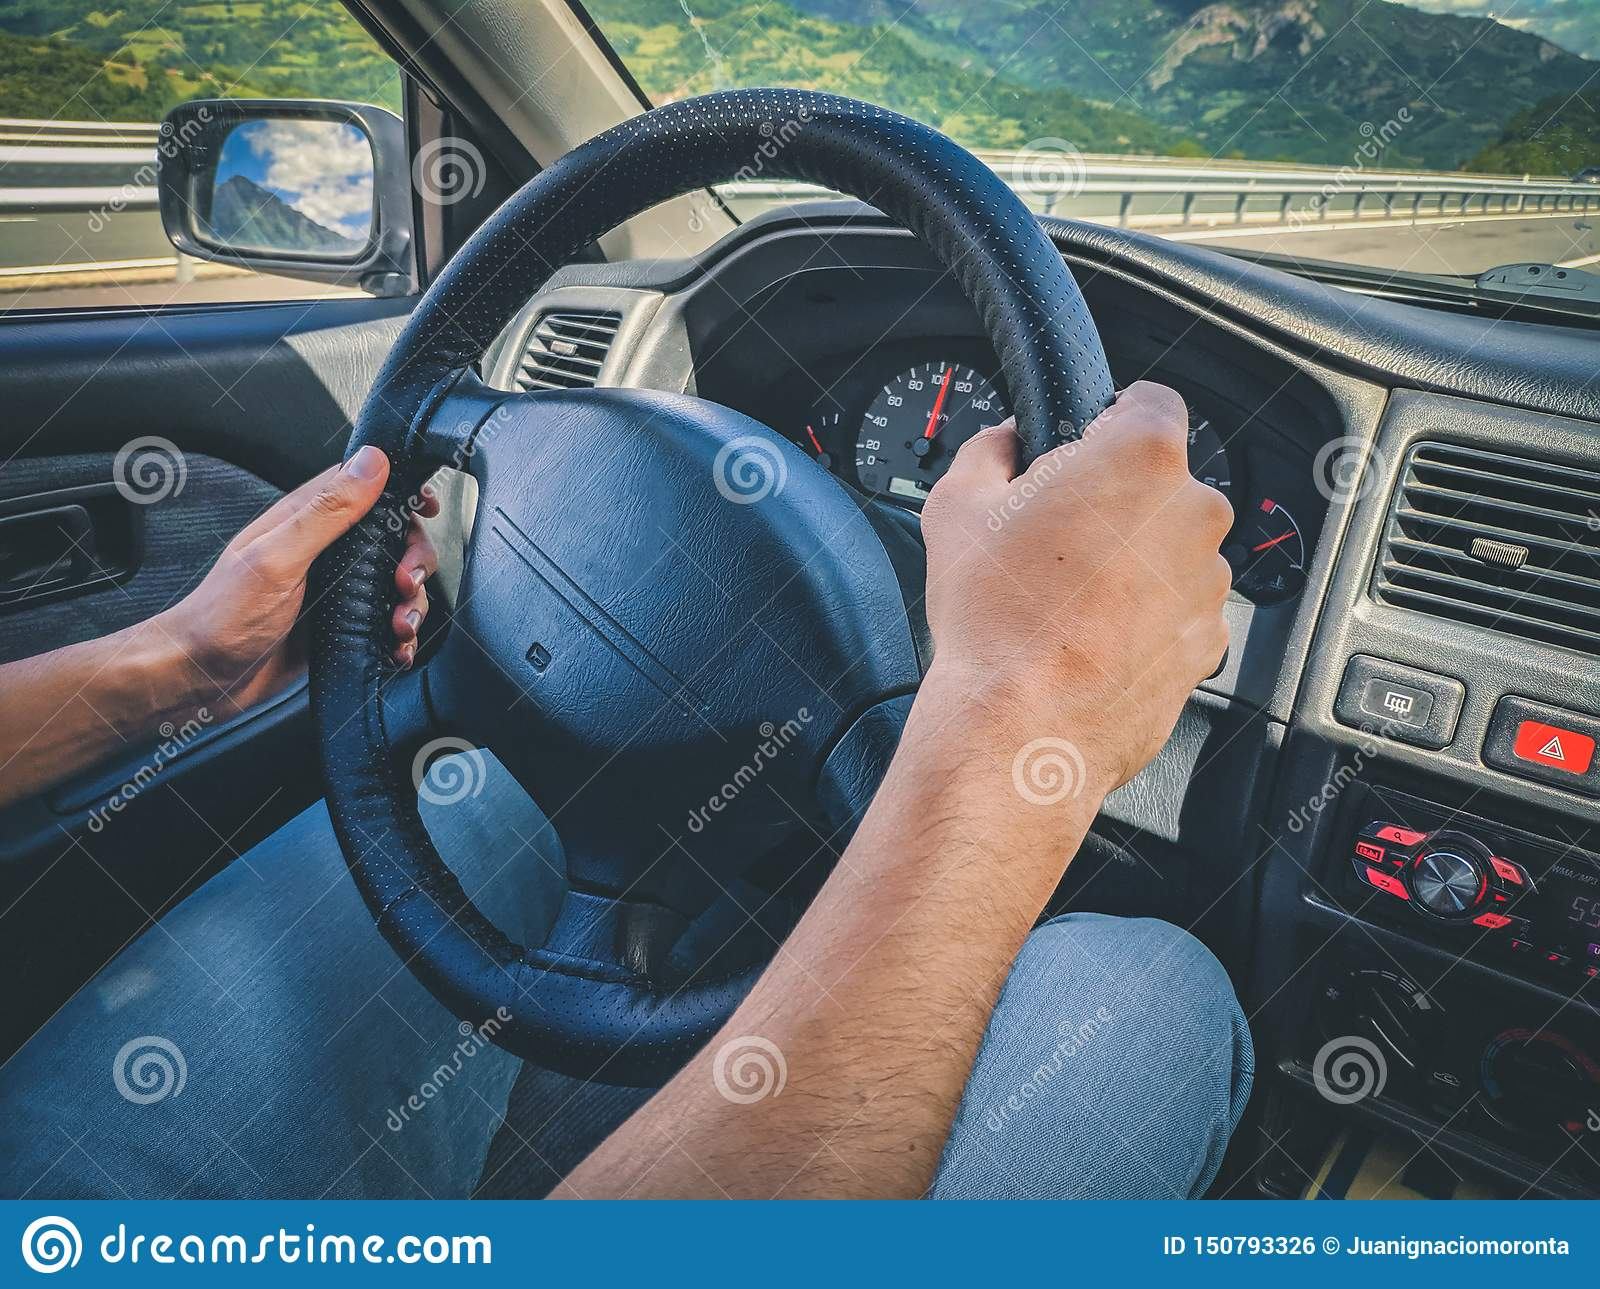 Generic photo of a man driving a car